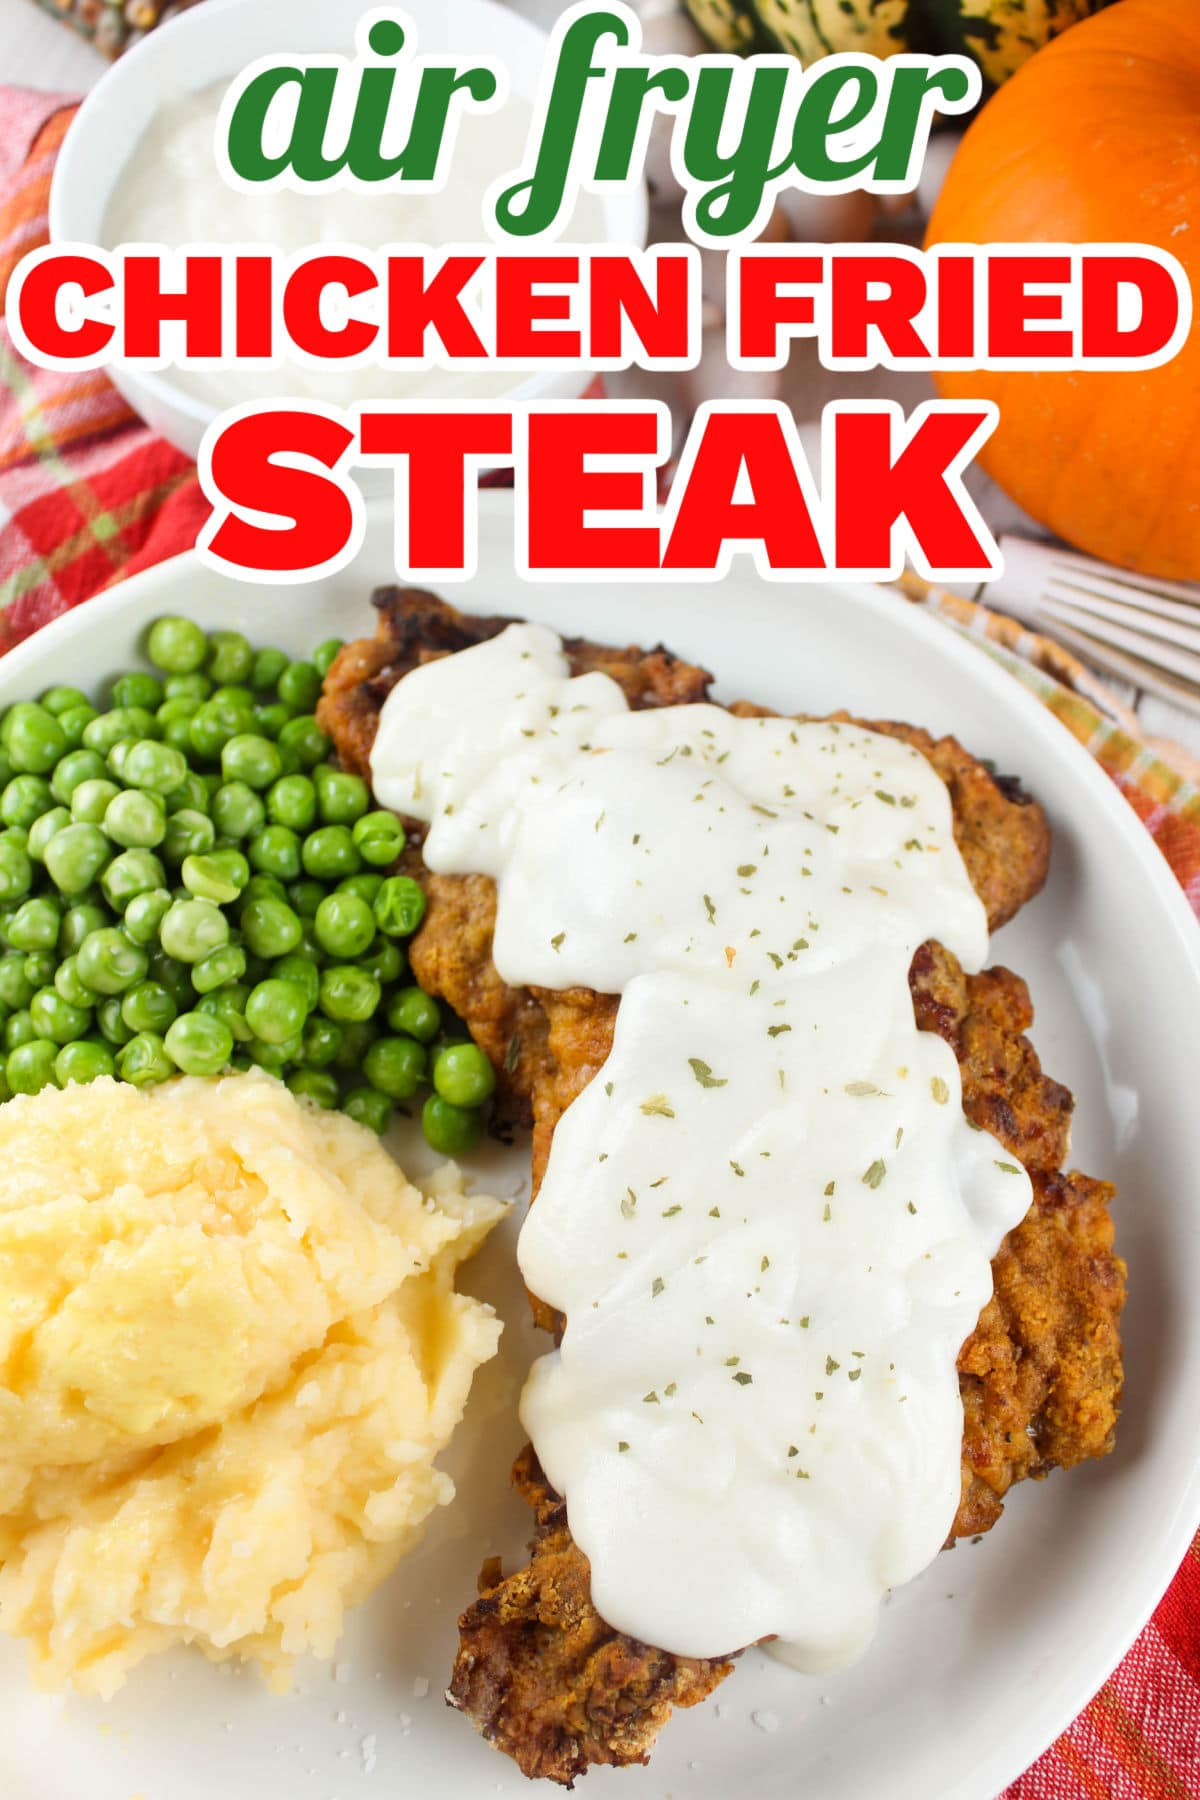 Air Fryer Chicken Fried Steak is so simple and just as comforting as you would expect! Crunchy coating over tenderized steak and topped with that creamy white gravy just like grandma (or Cracker Barrel) used to make! The bonus - much less oil and calories! via @foodhussy